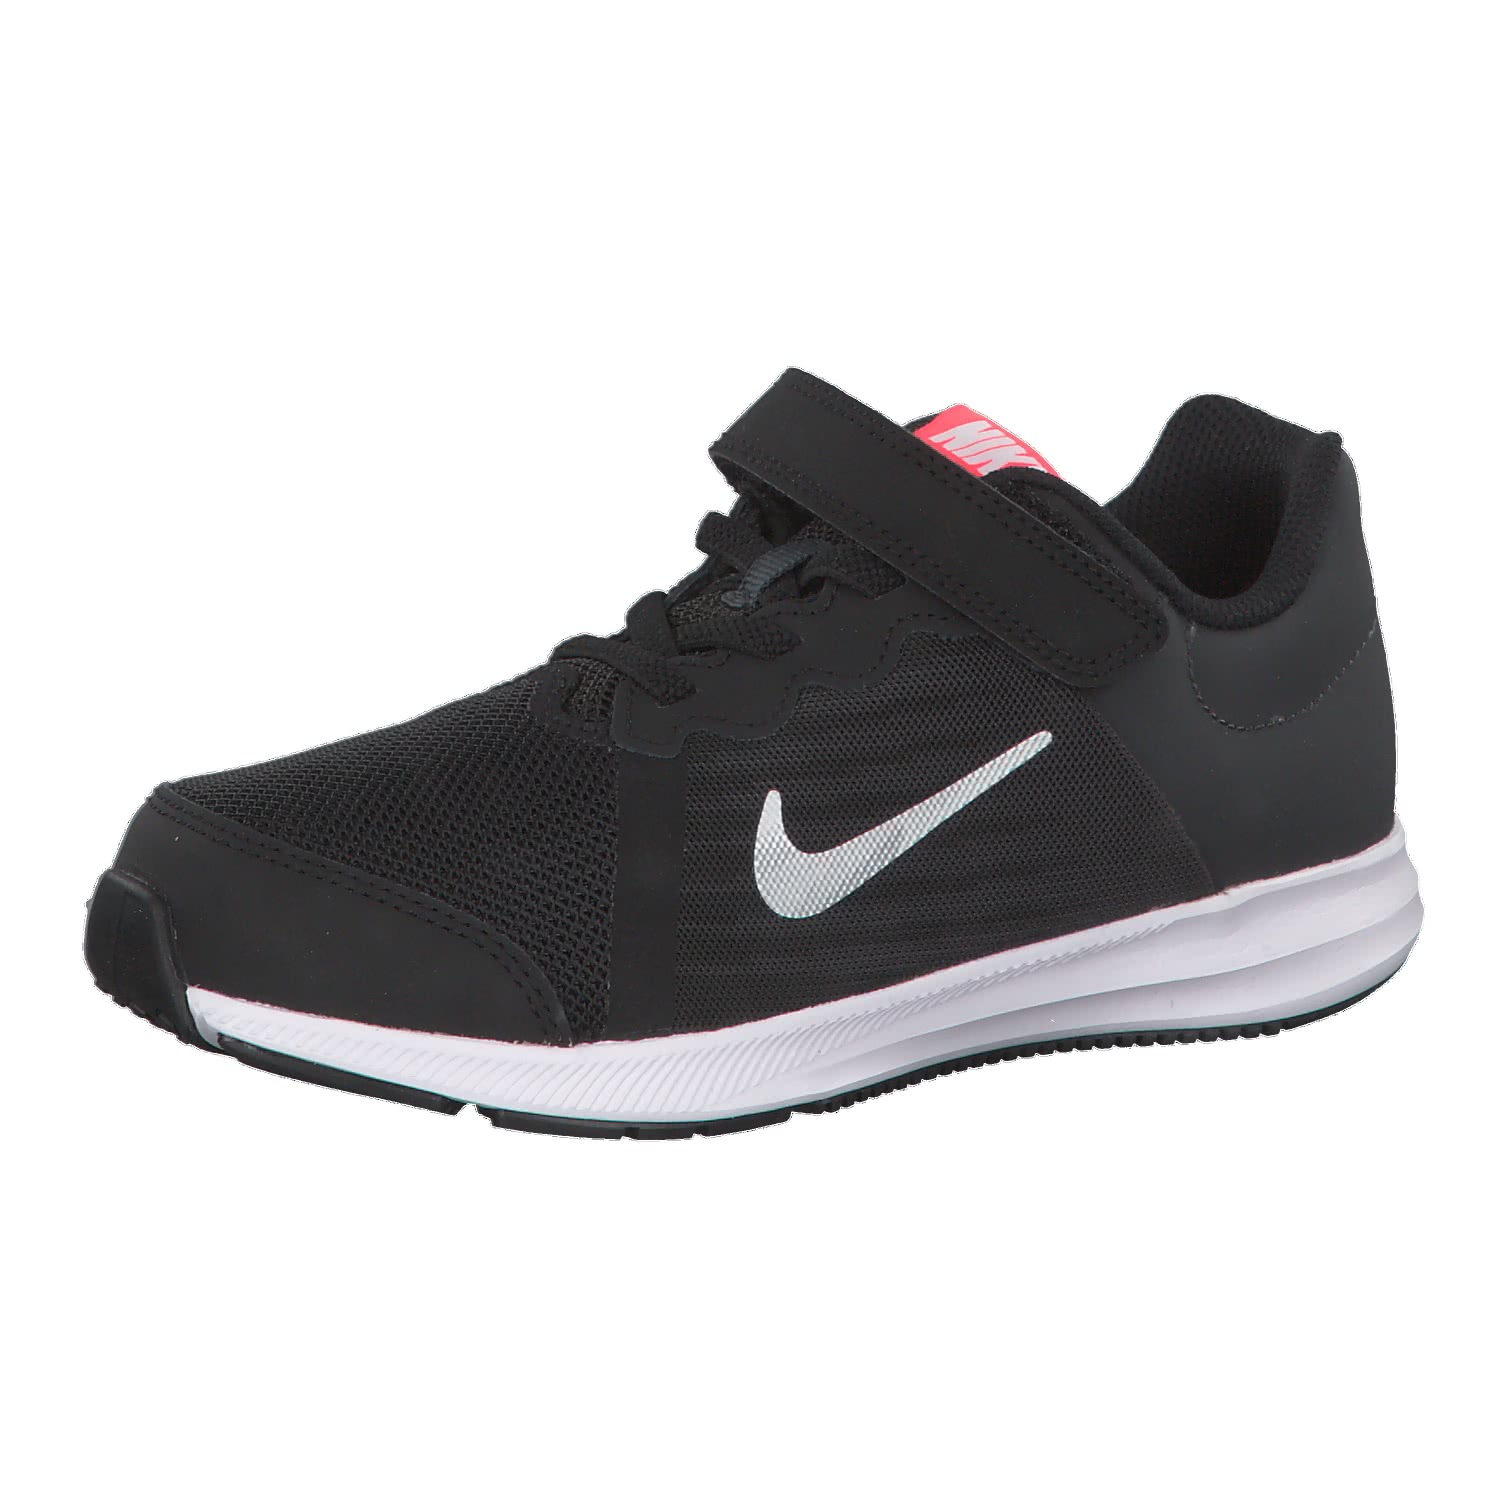 Nike Performance Downshifter 8 Laufschuh Neutral Kinder